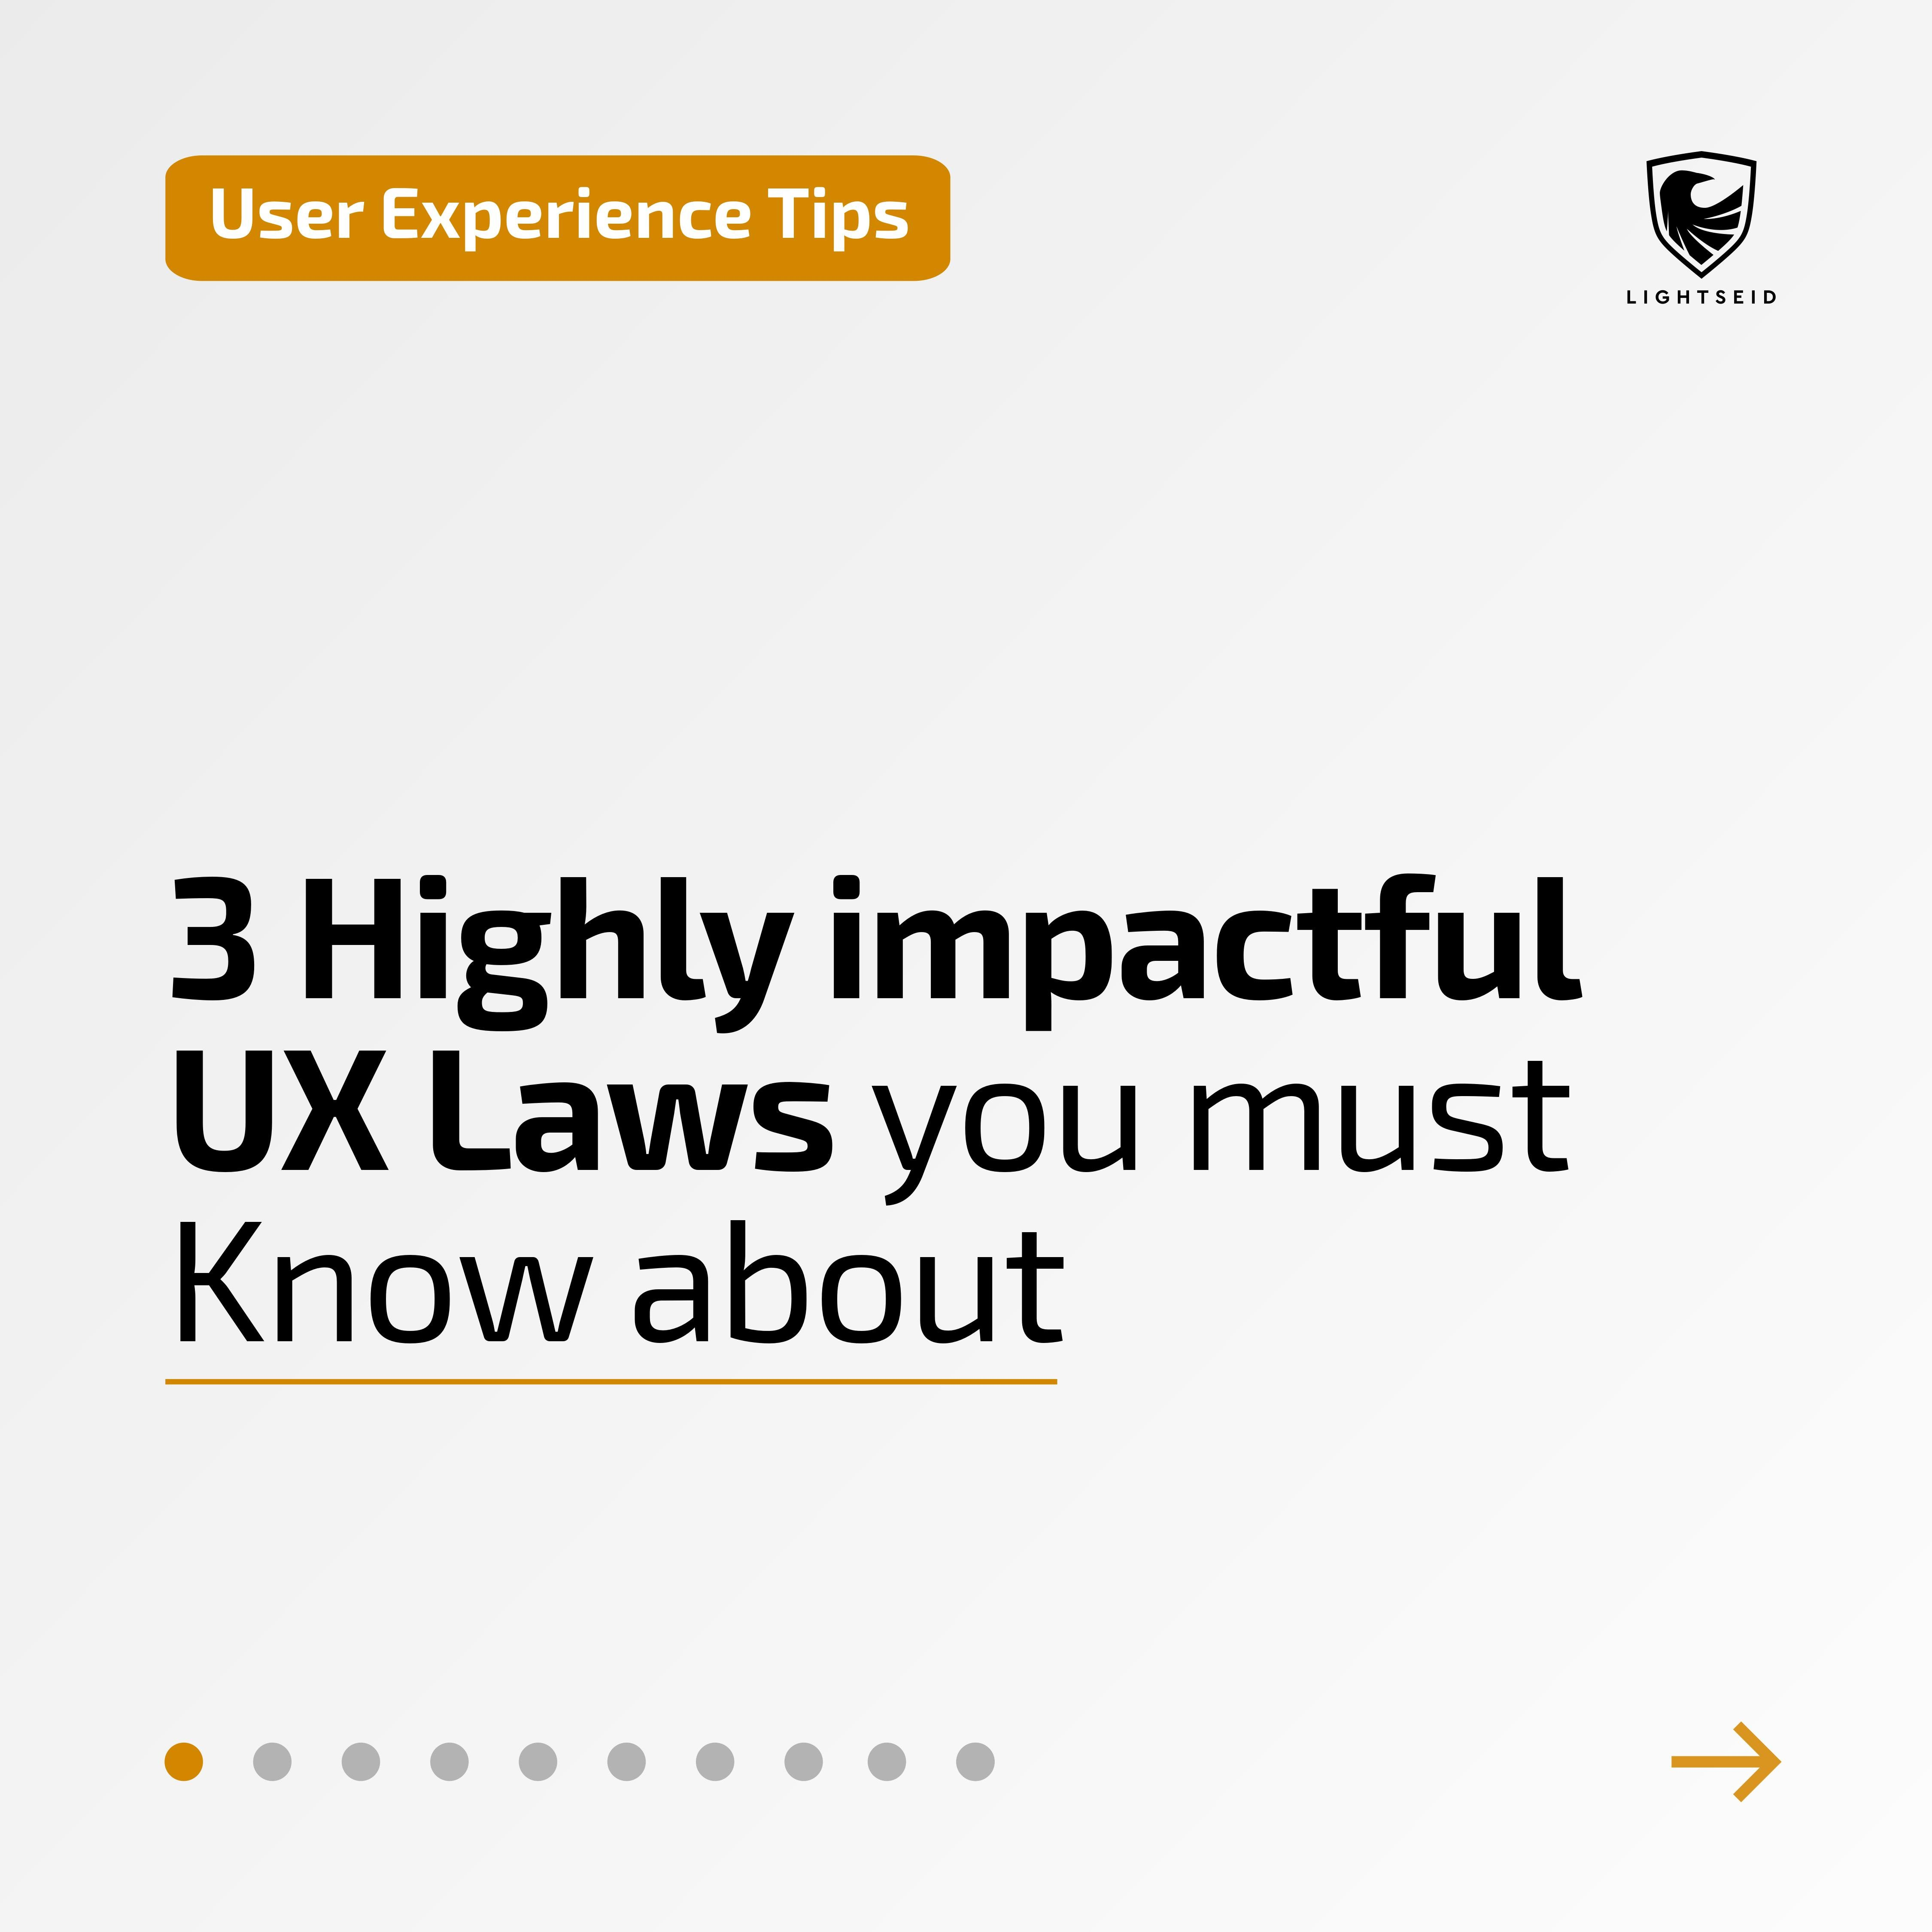 3 Highly Impactful UX Laws You Must Know About